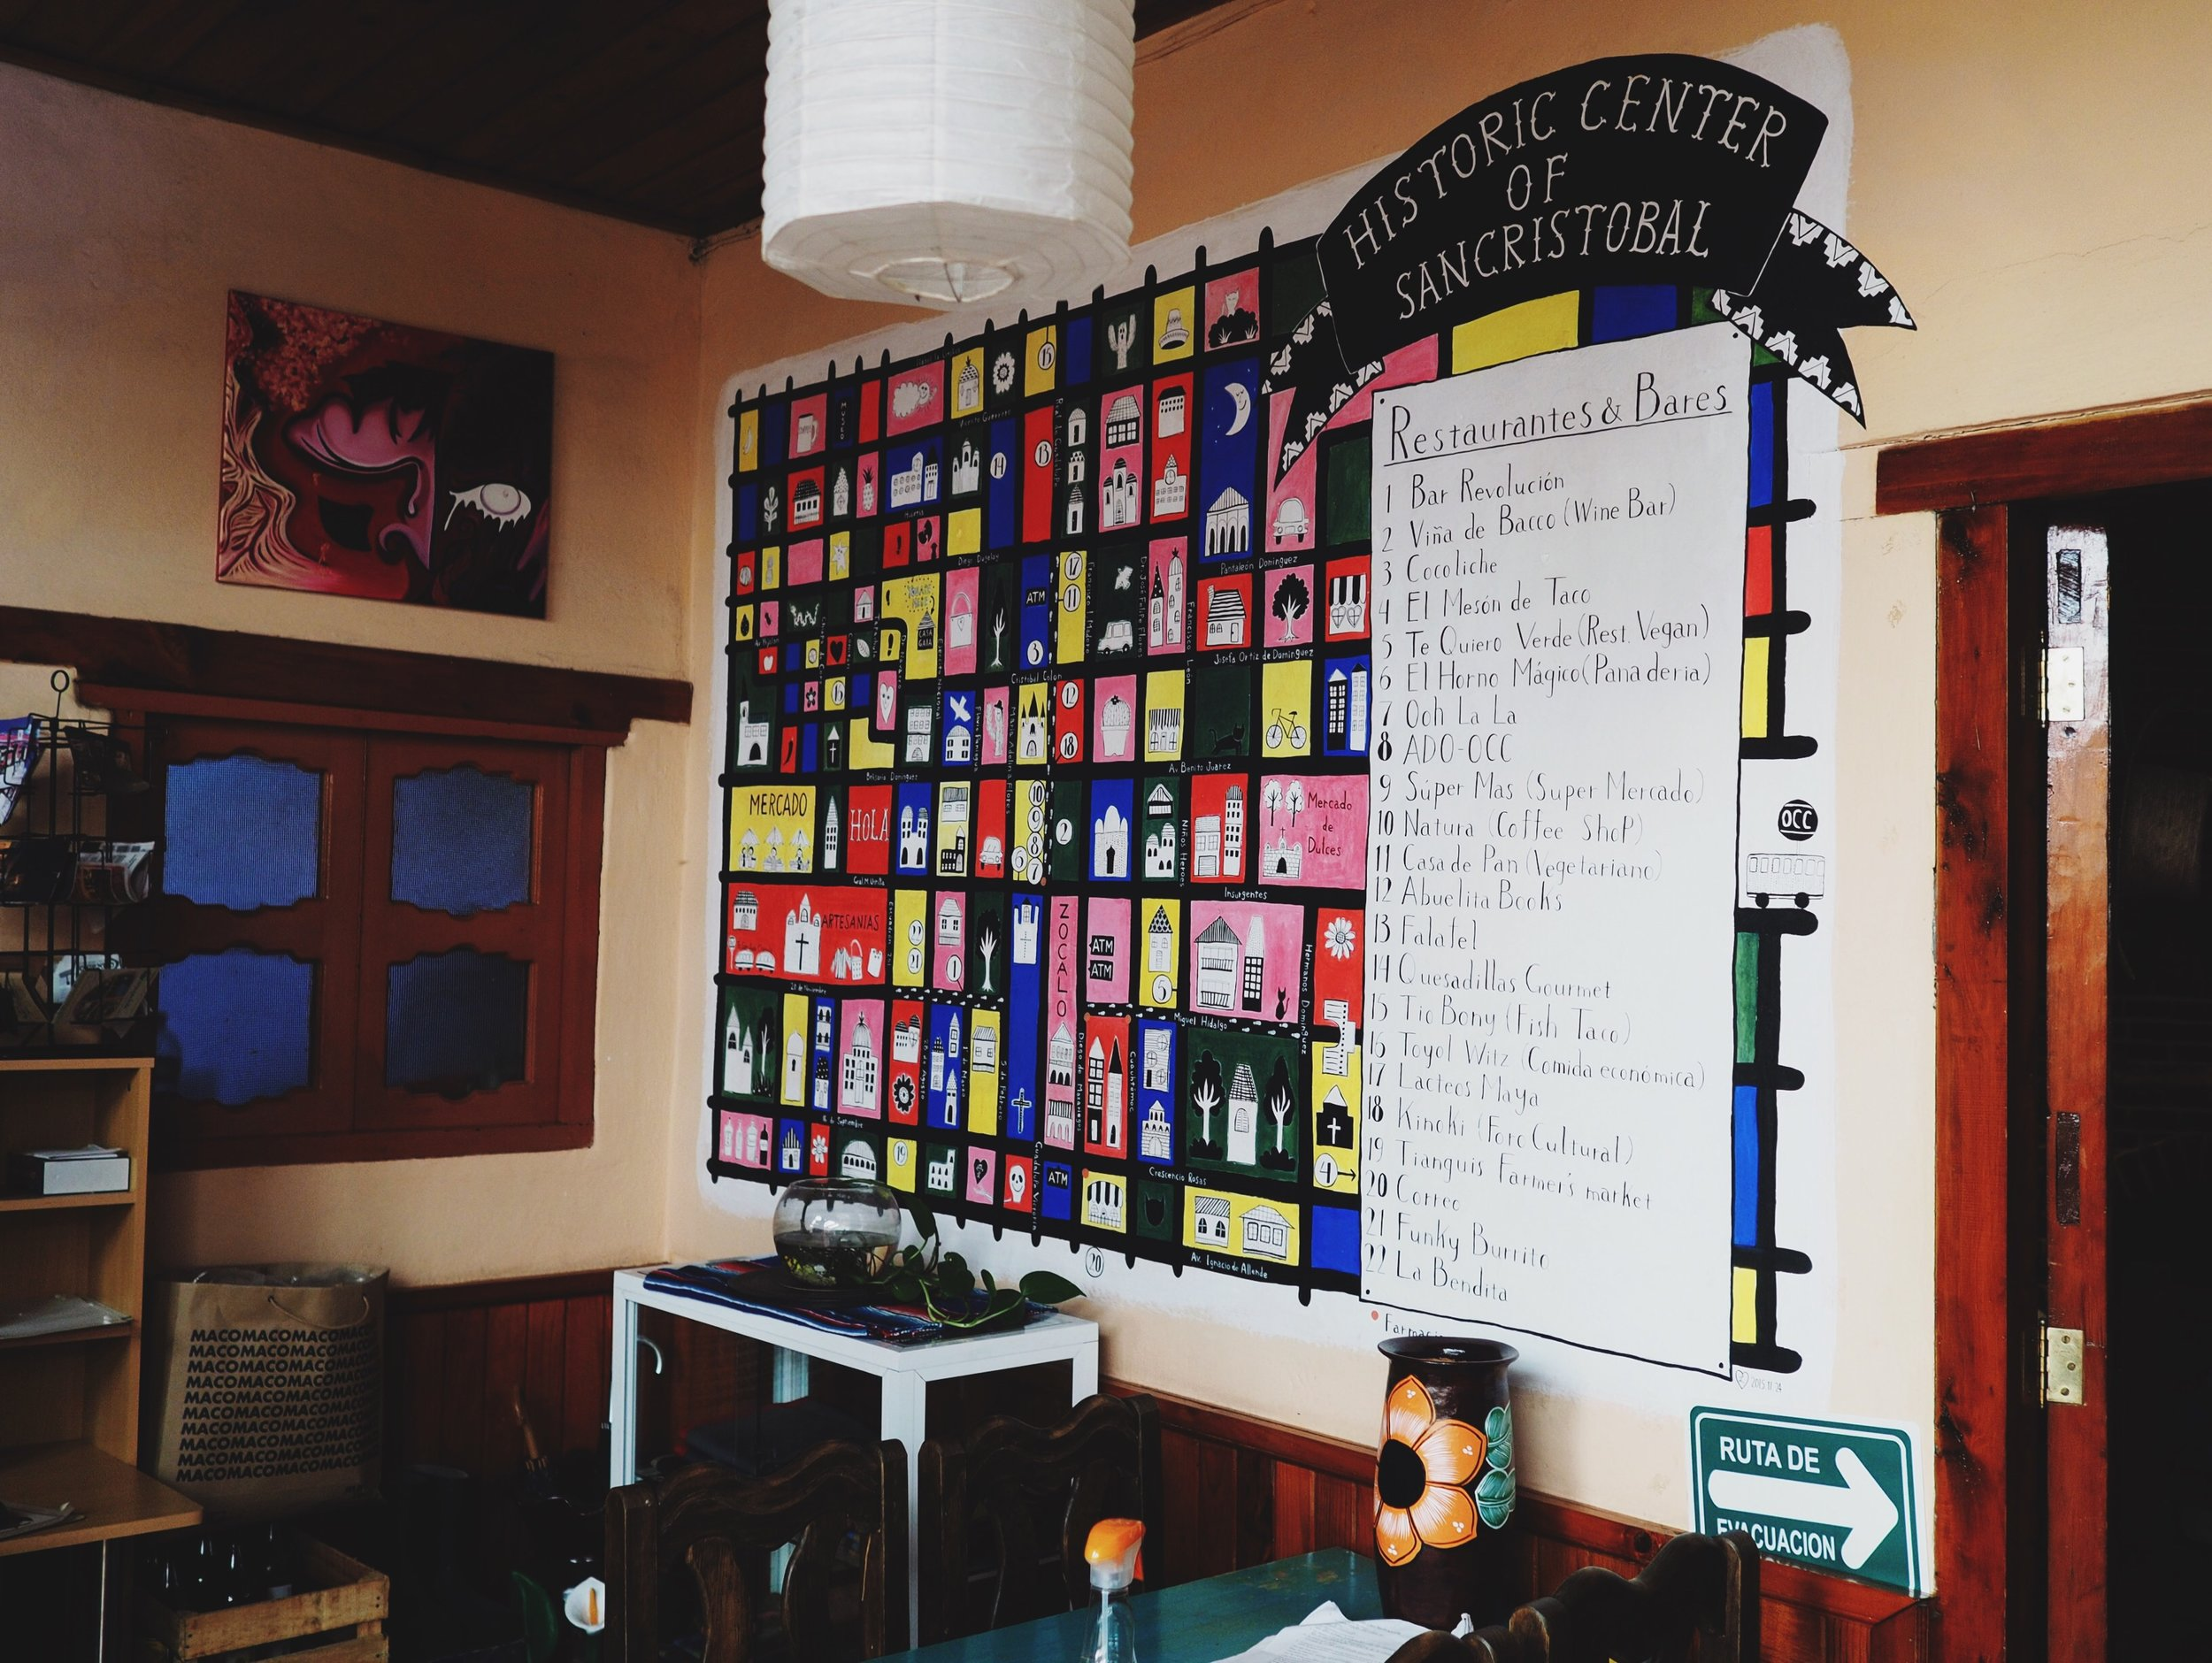 Casa Gaia's map of downtown helped us find interesting things to do and see all over town